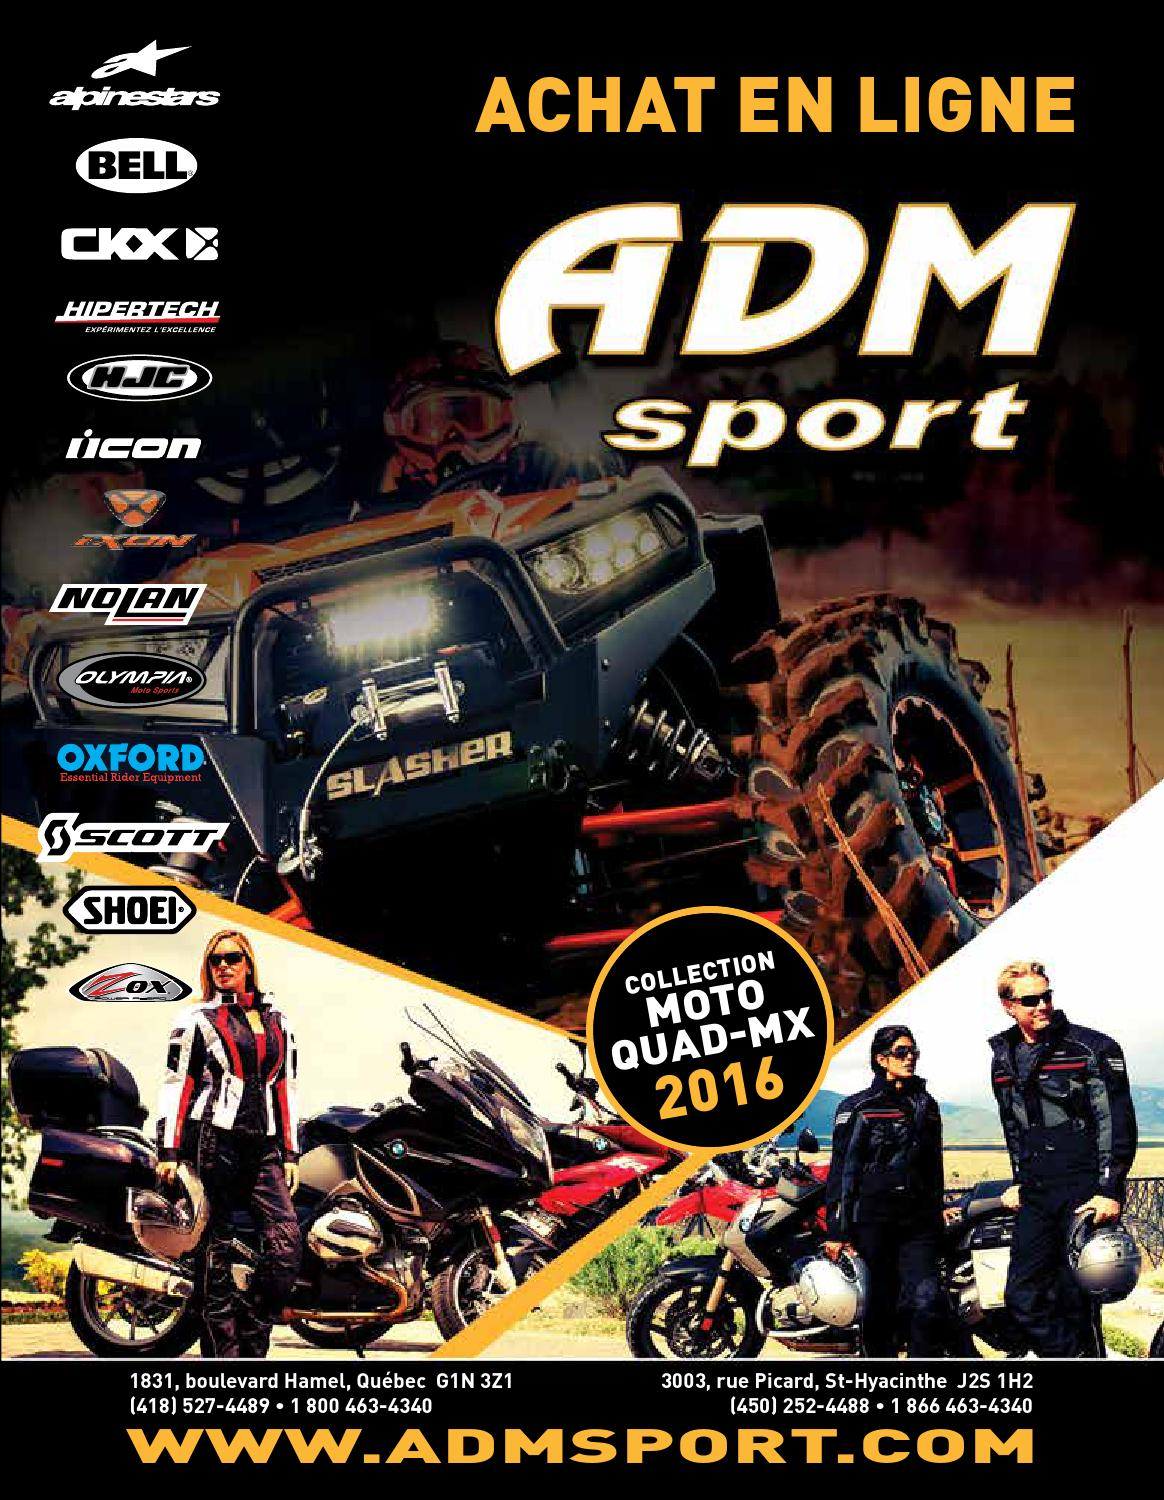 Catalogue Collection Moto Quad Mx 2016 By Adm Sport Issuu